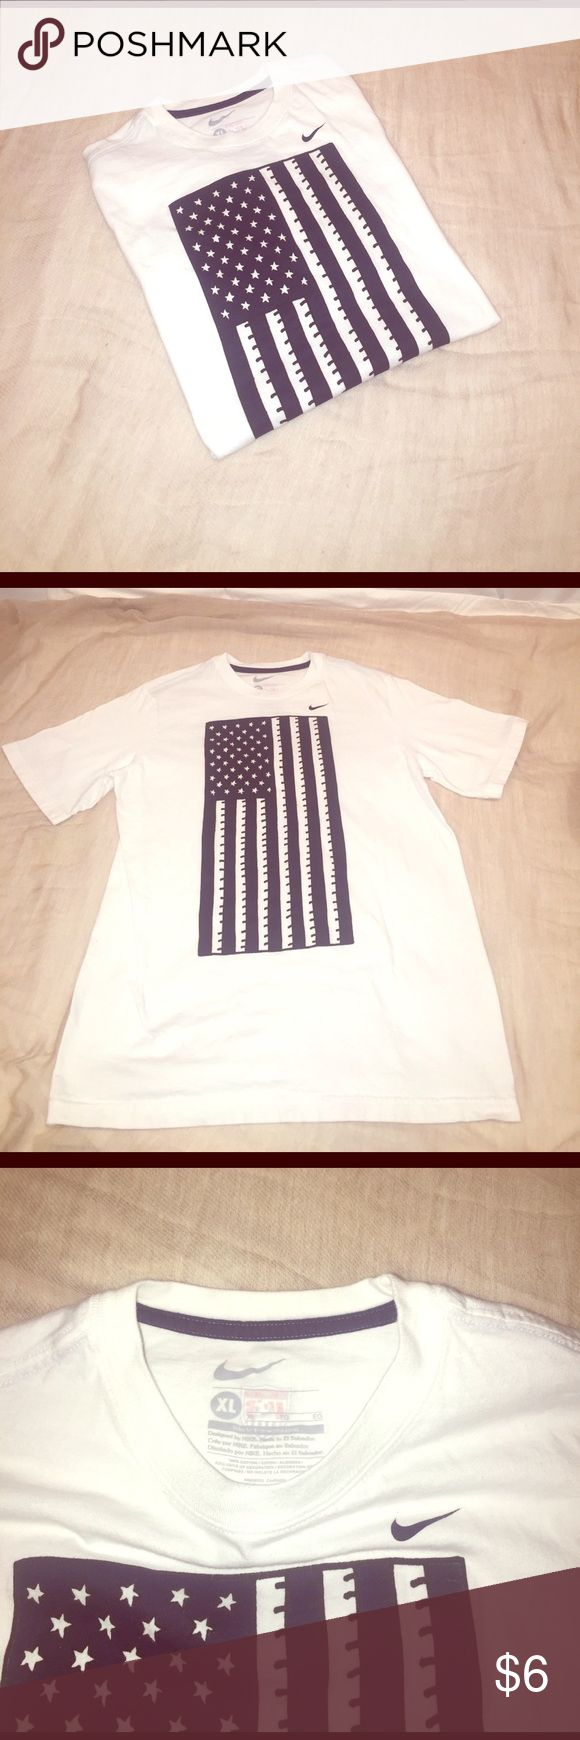 Nike Boy's USA White T-Shirt Nike Boy's USA White T-Shirt with American flag vertical on the front. Back has a small USA soccer logo. 100% cotton. EUC Nike Shirts & Tops Tees - Short Sleeve